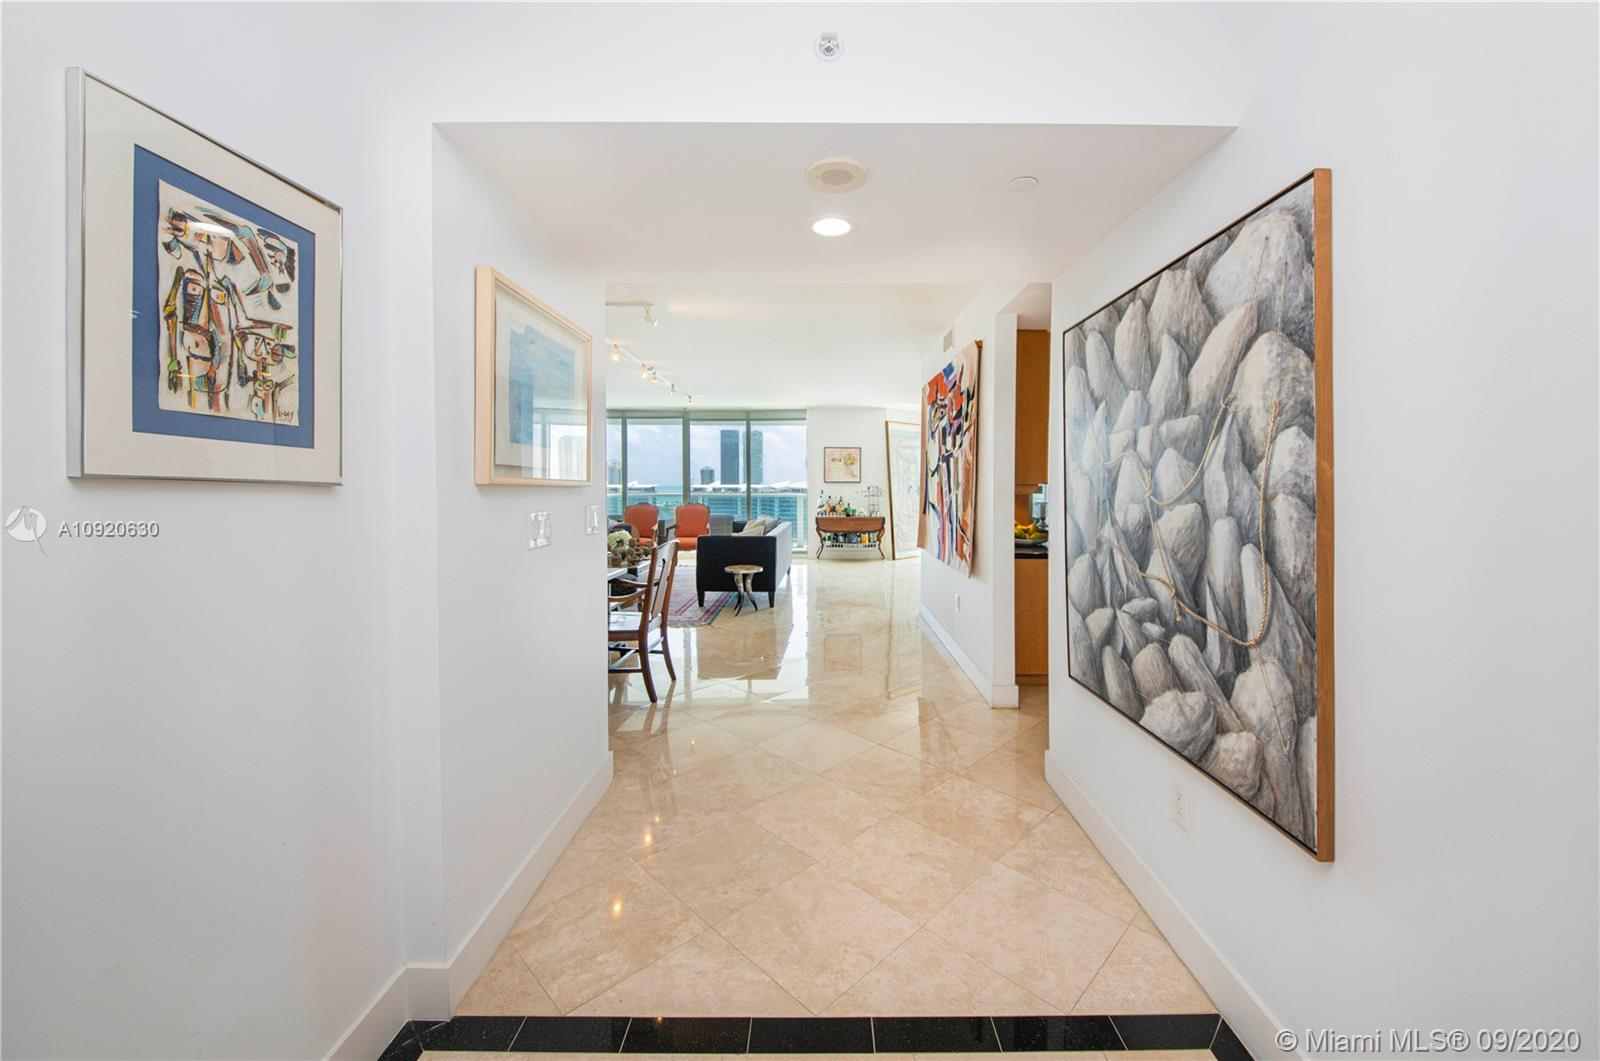 Enjoy luxury and comfort in this impeccable unit. This flow-through residence has a private elevator